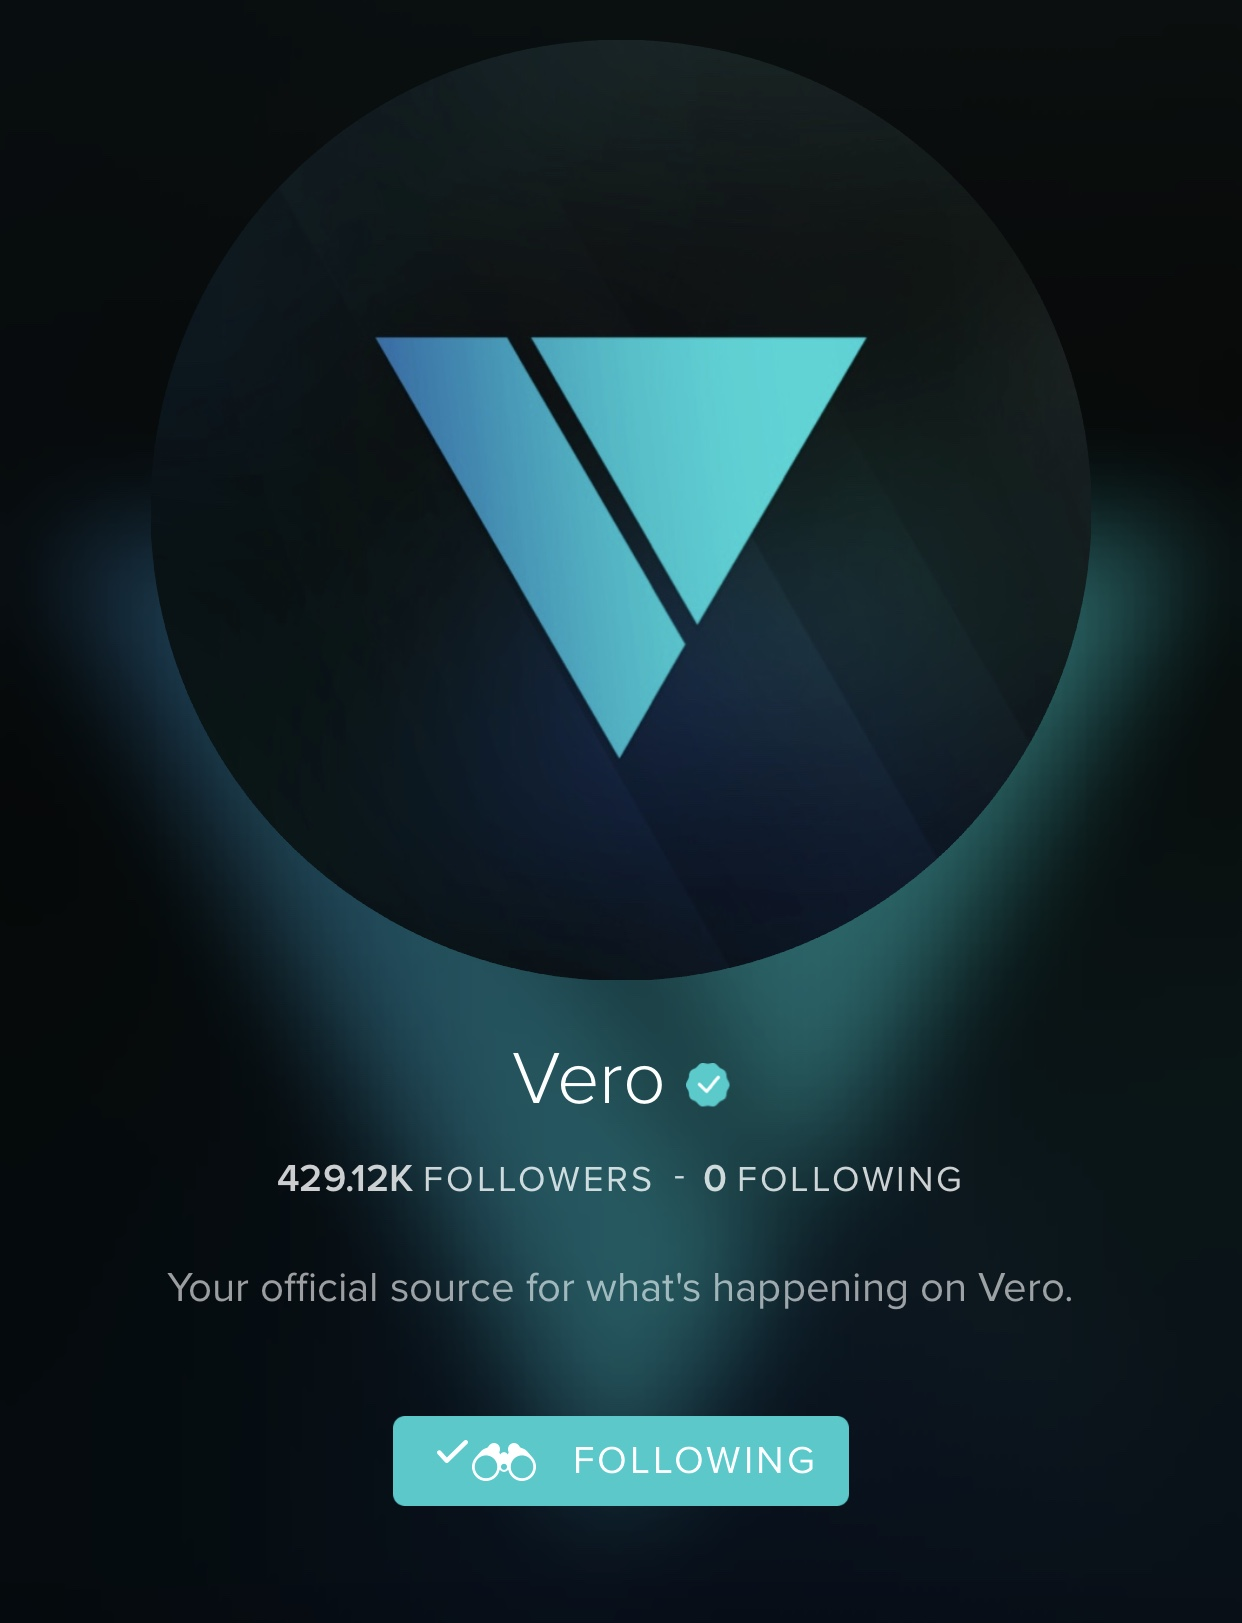 What Happened to Vero? - An Open Letter to Vero and why it failed, by Frans Flores